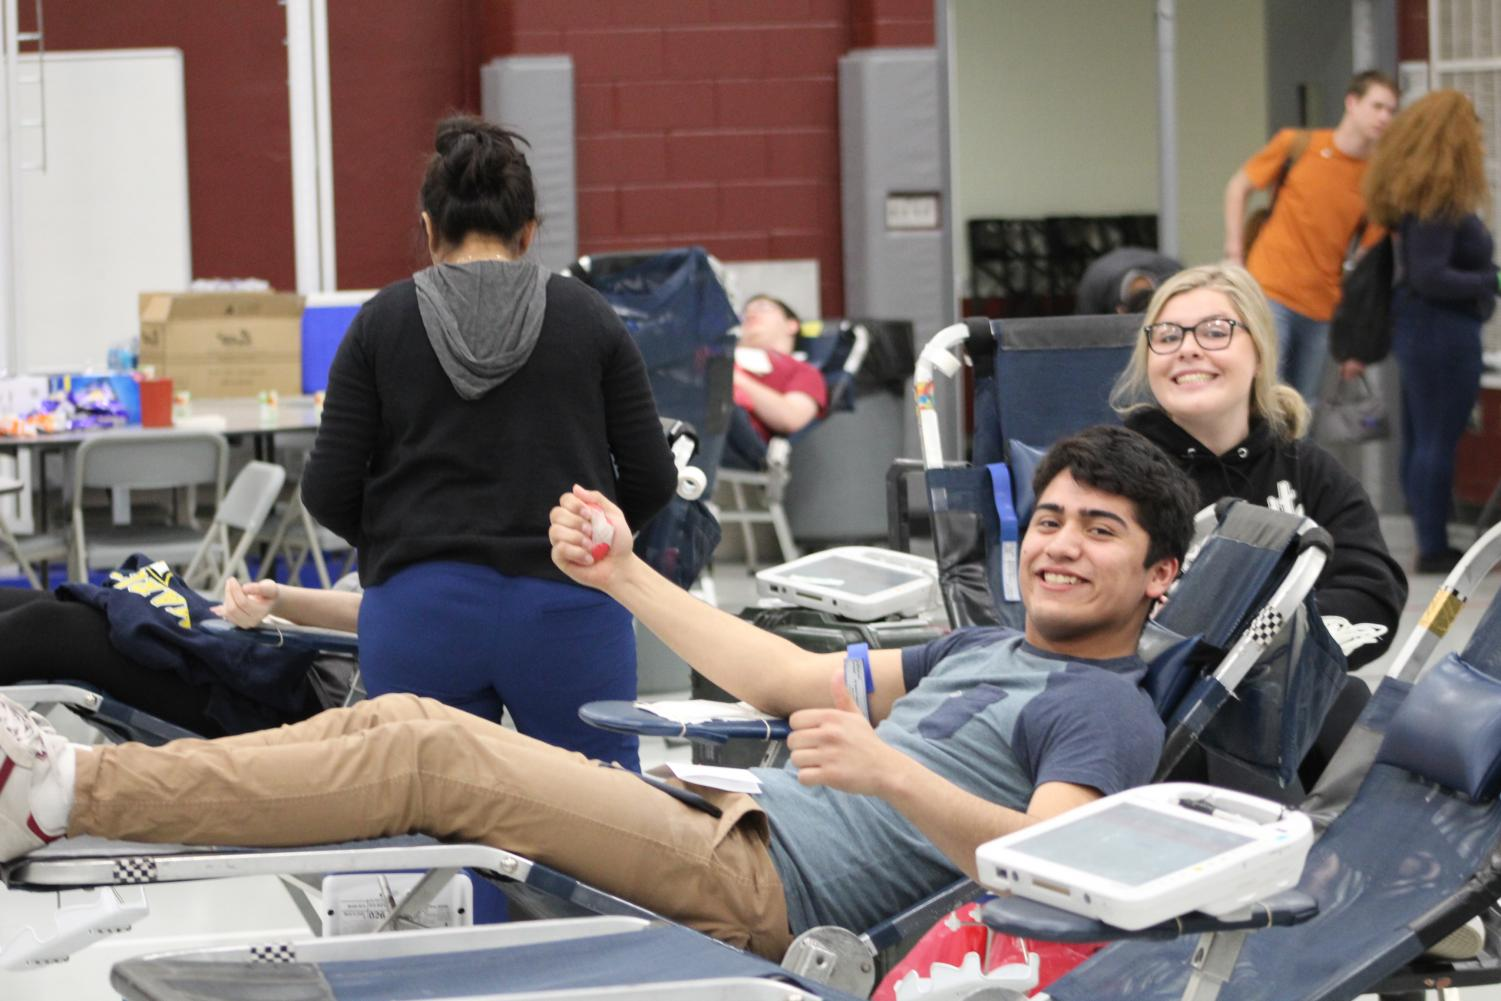 Seniors Christian Ortiz and Victoria Henkel smile as they donate blood.